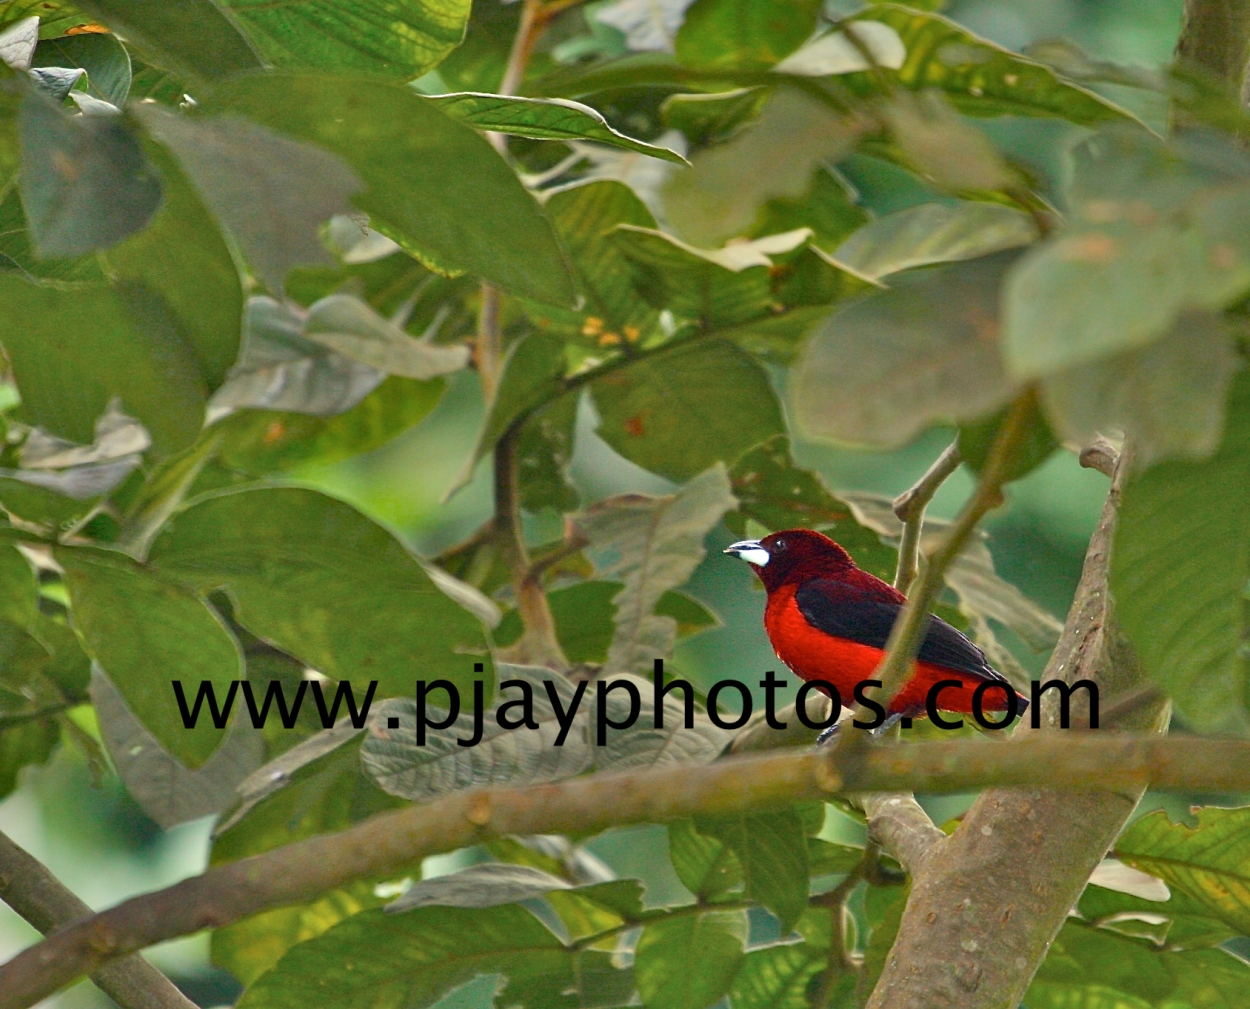 crimson-backed tanager, tanager, bird, colombia, nature, wildlife, photograph